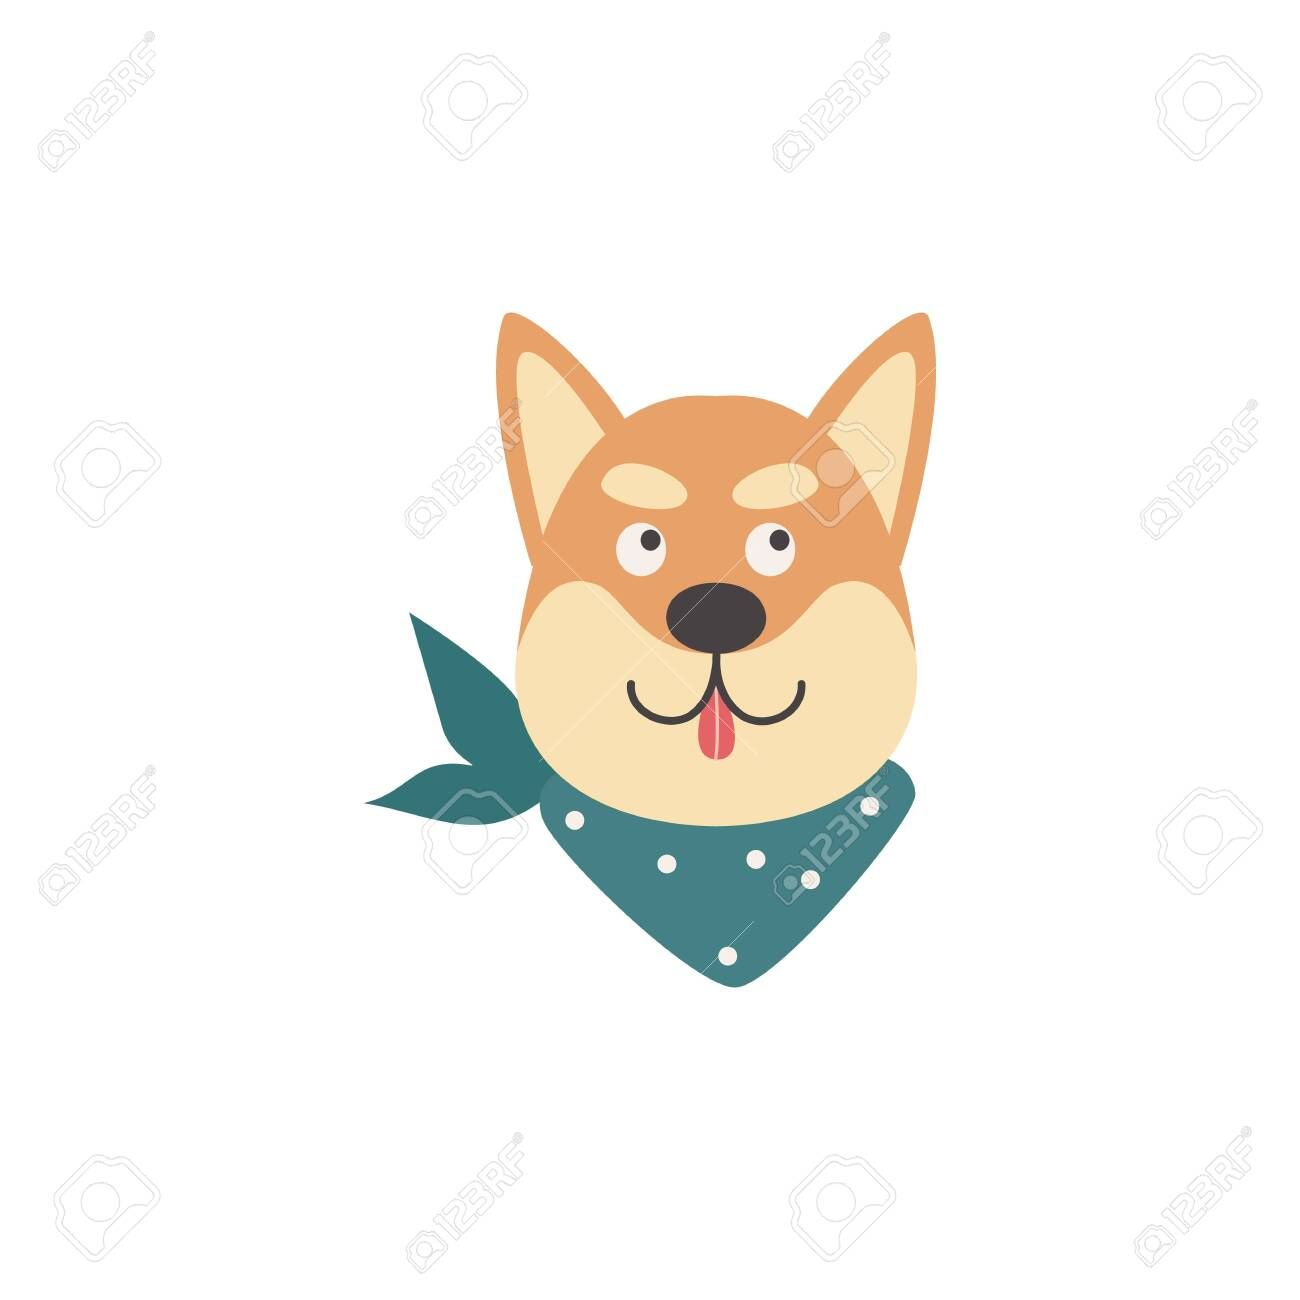 Cartoon Shiba Inu Head With Tongue Out Isolated On White Background Flat Isolated Dog Face Looking Up With Smile Ex Funny Dog Faces Japanese Animals Dog Face